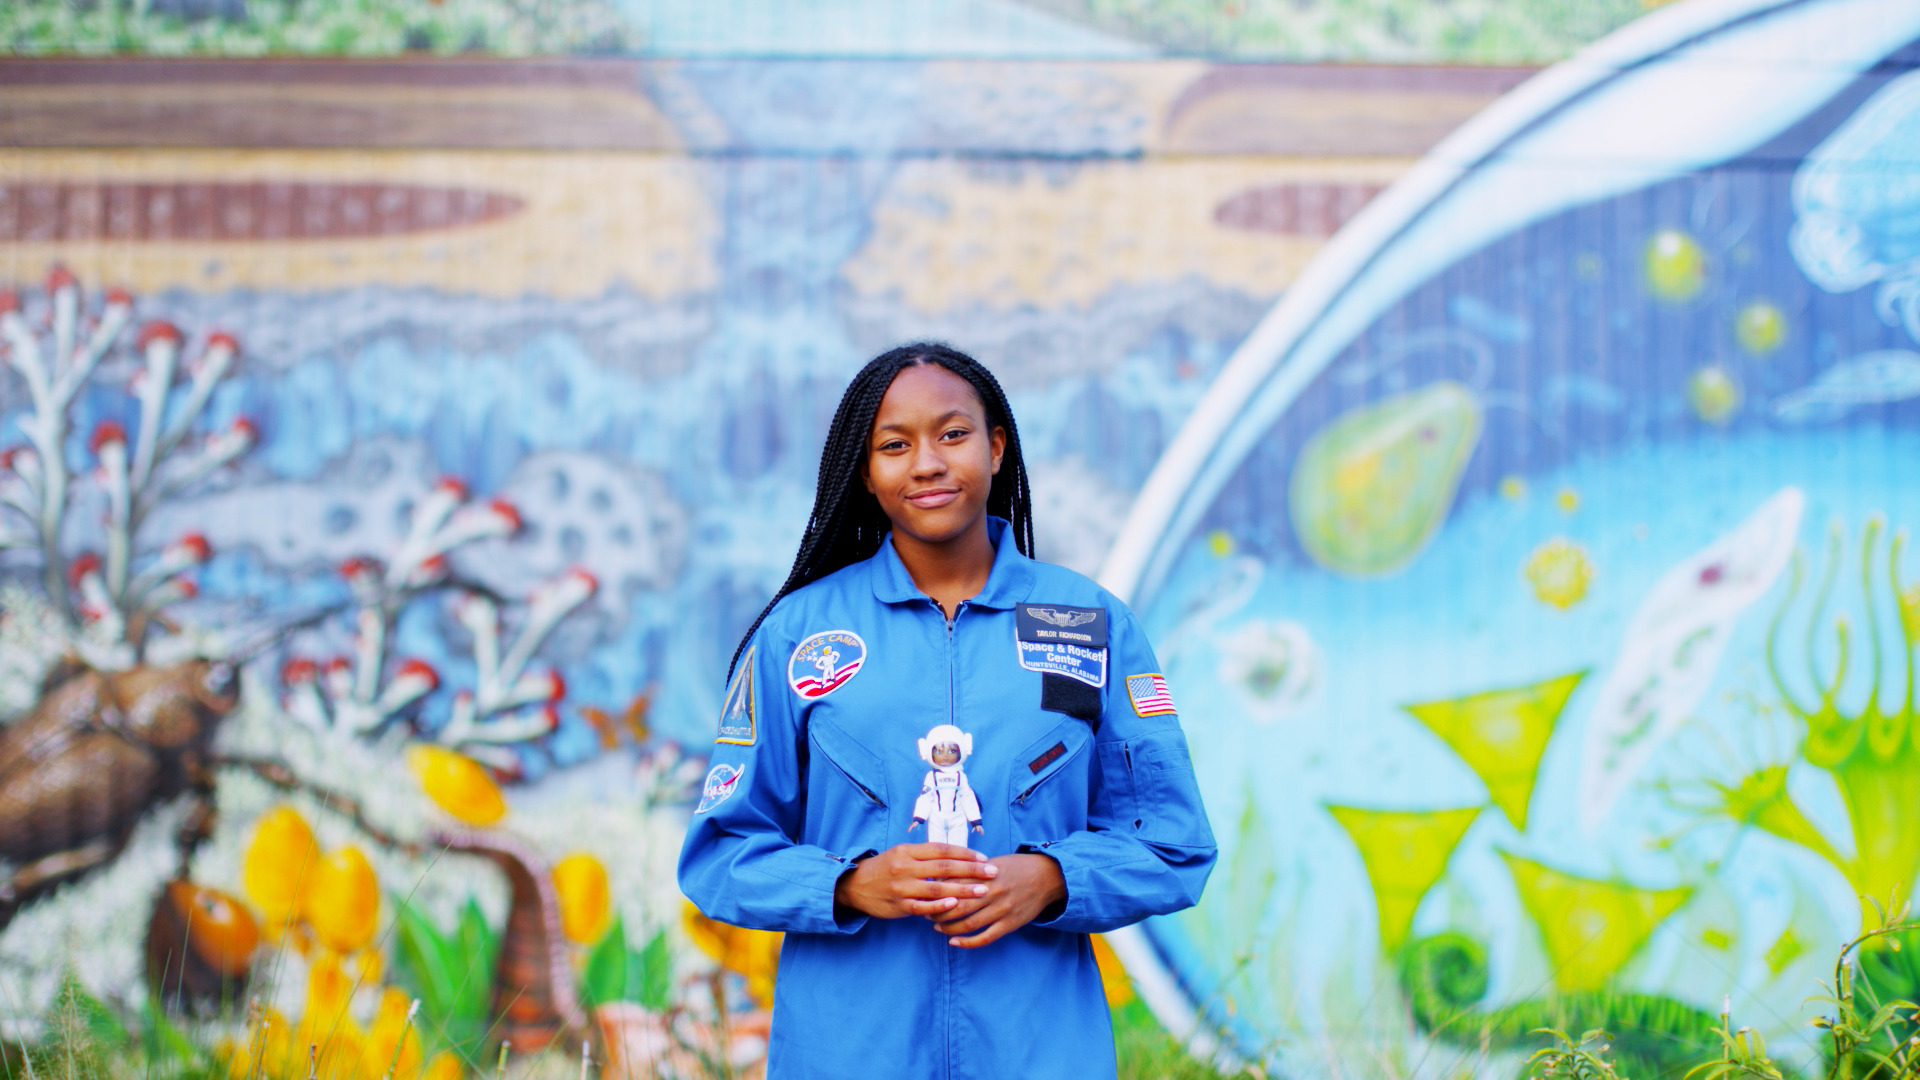 Taylor Richardson, a 13-year-old from Jacksonville, Florida, is going places — perhaps Mars!